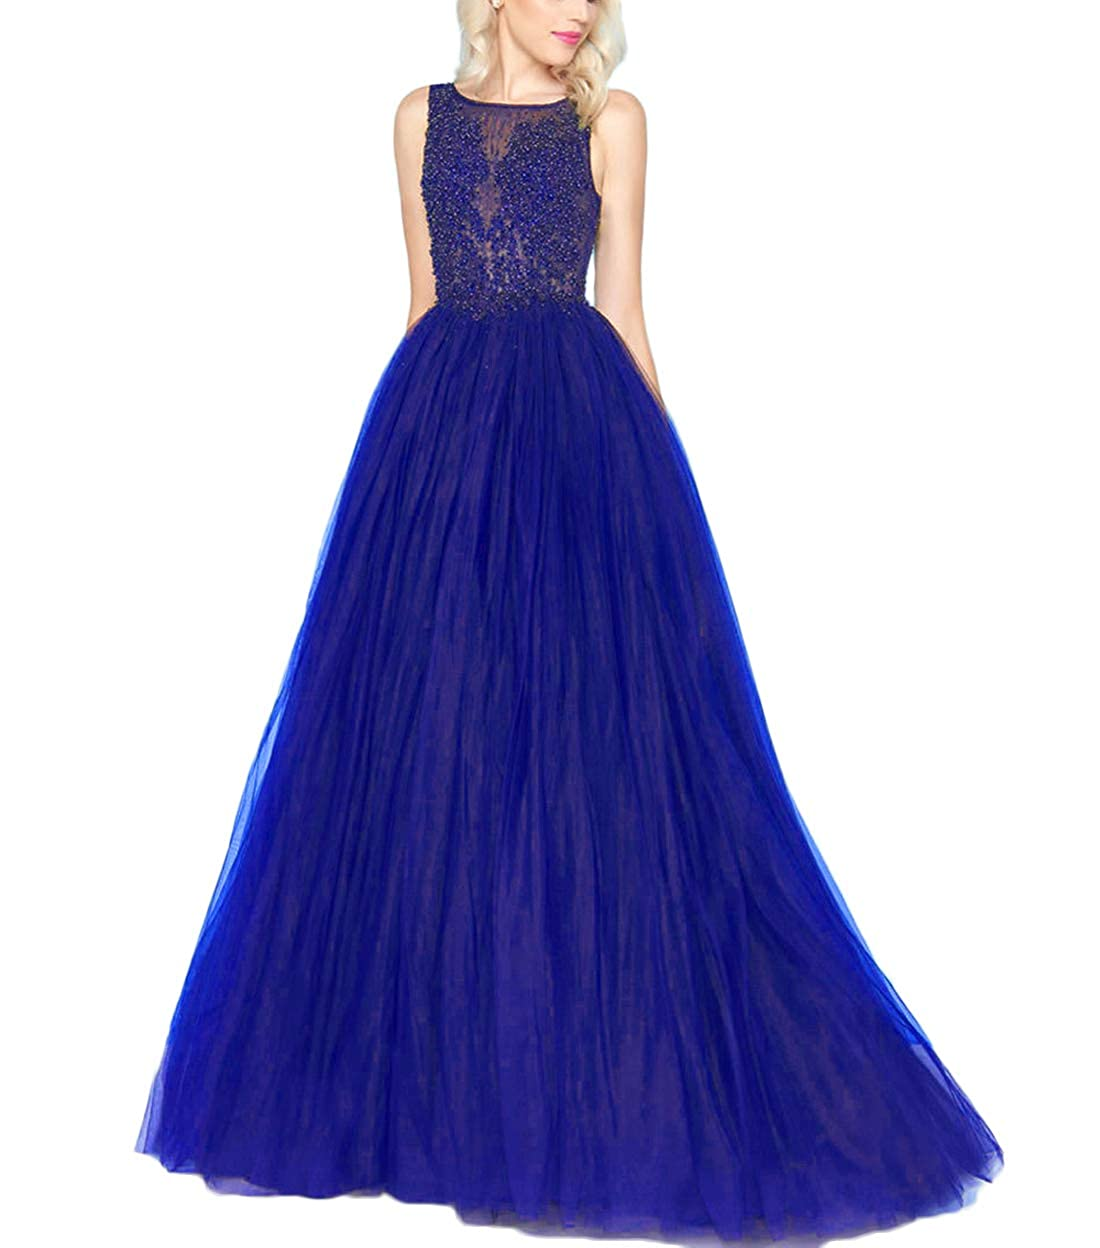 Royal bluee Yisha Bello Women's ALine Pearls Beaded Pro Dress Long Tulle Quinceanera Dress Evening Ball Gowns